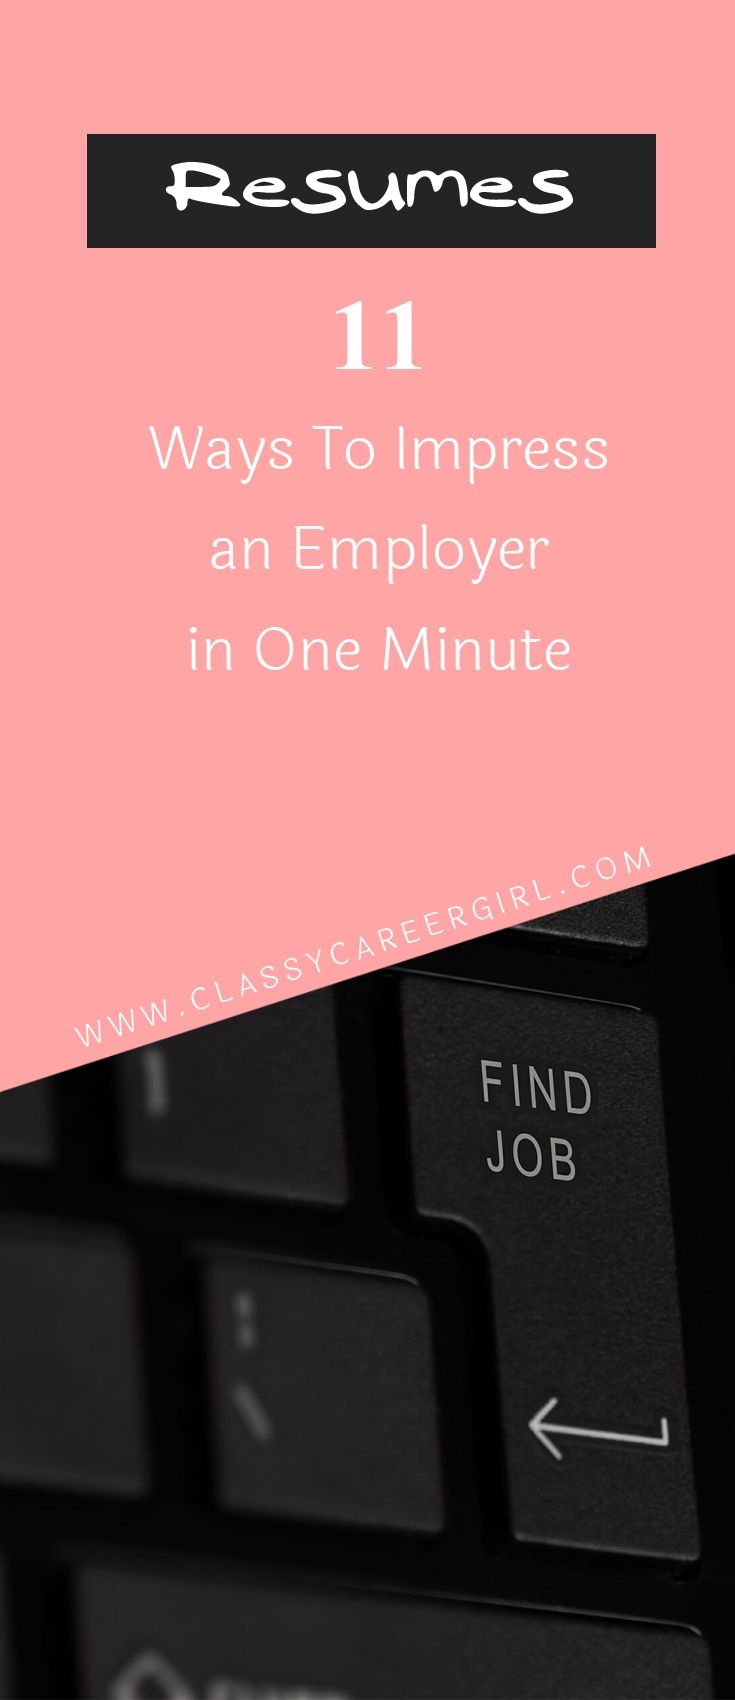 resumes  11 ways to impress an employer in one minute